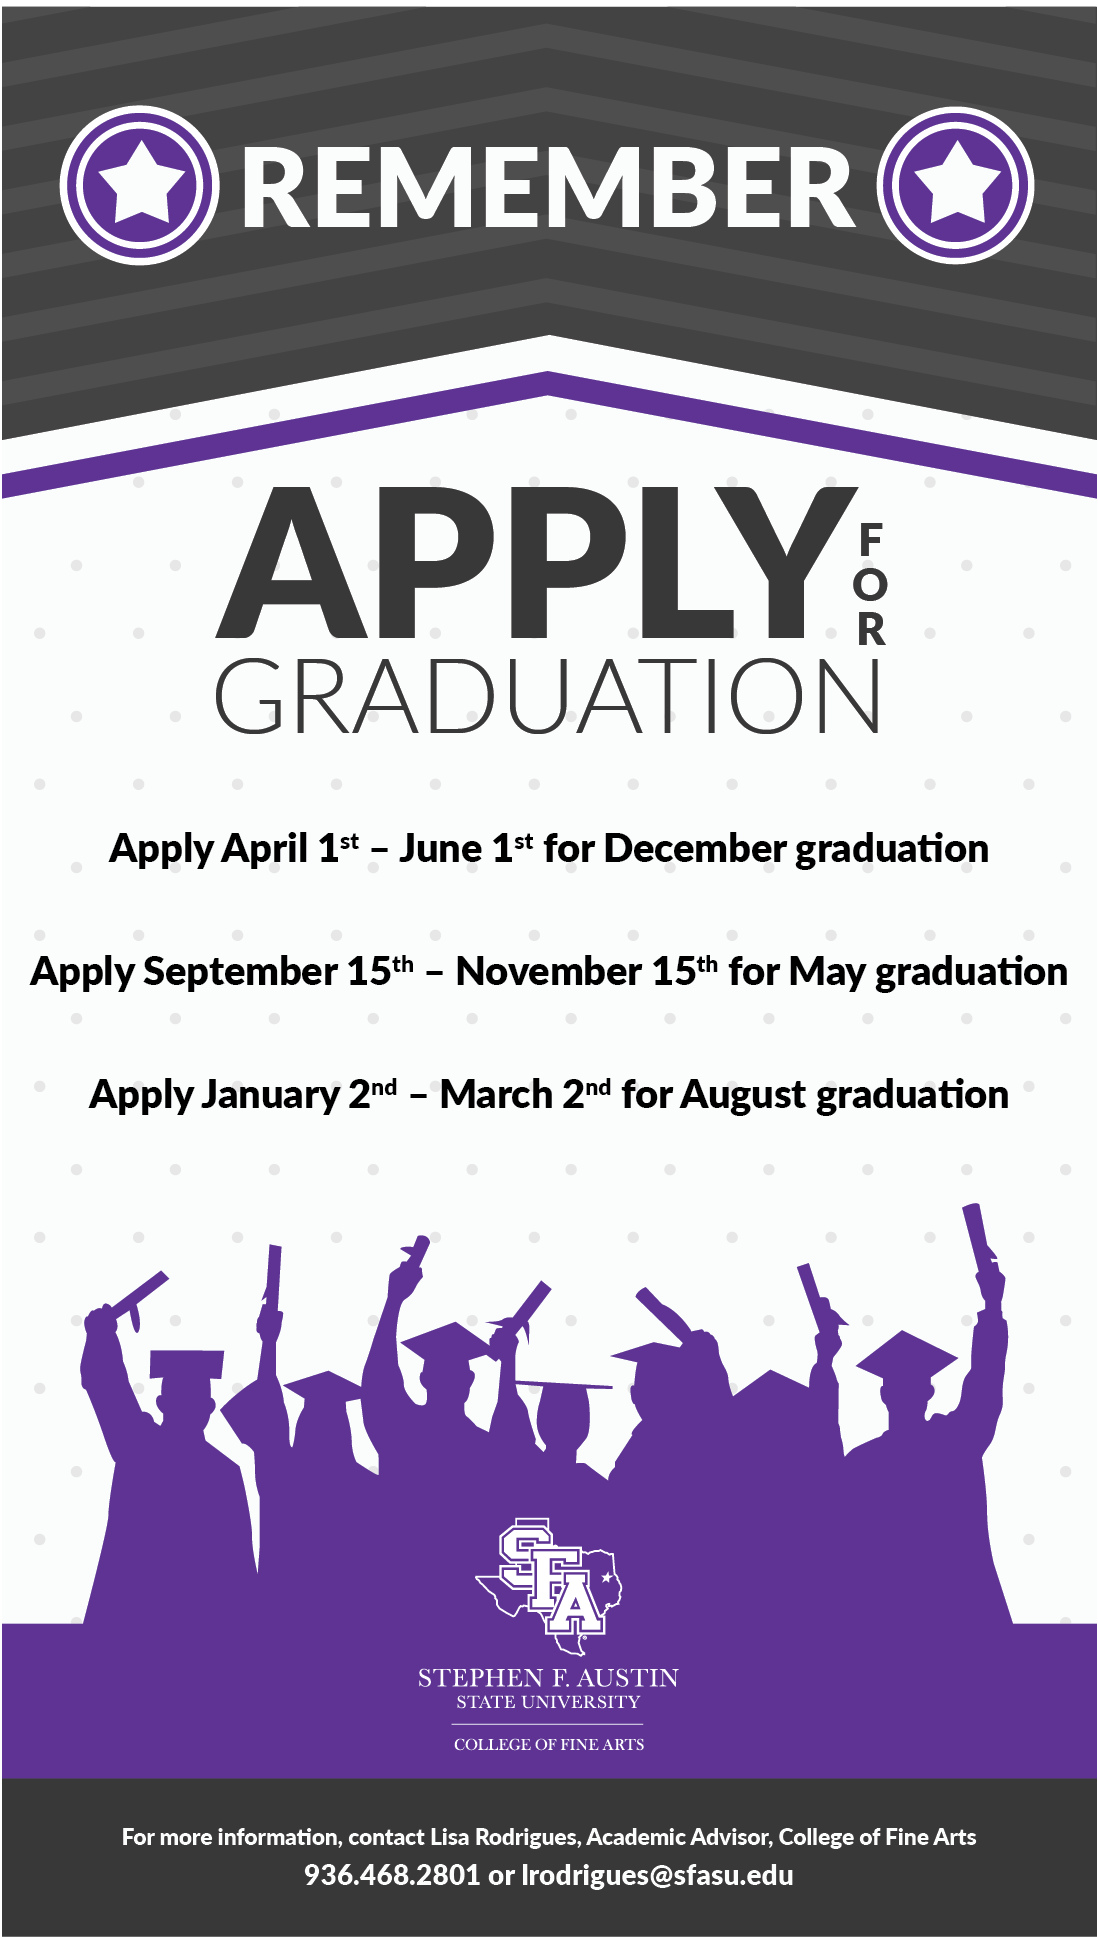 apply for graduation reminder